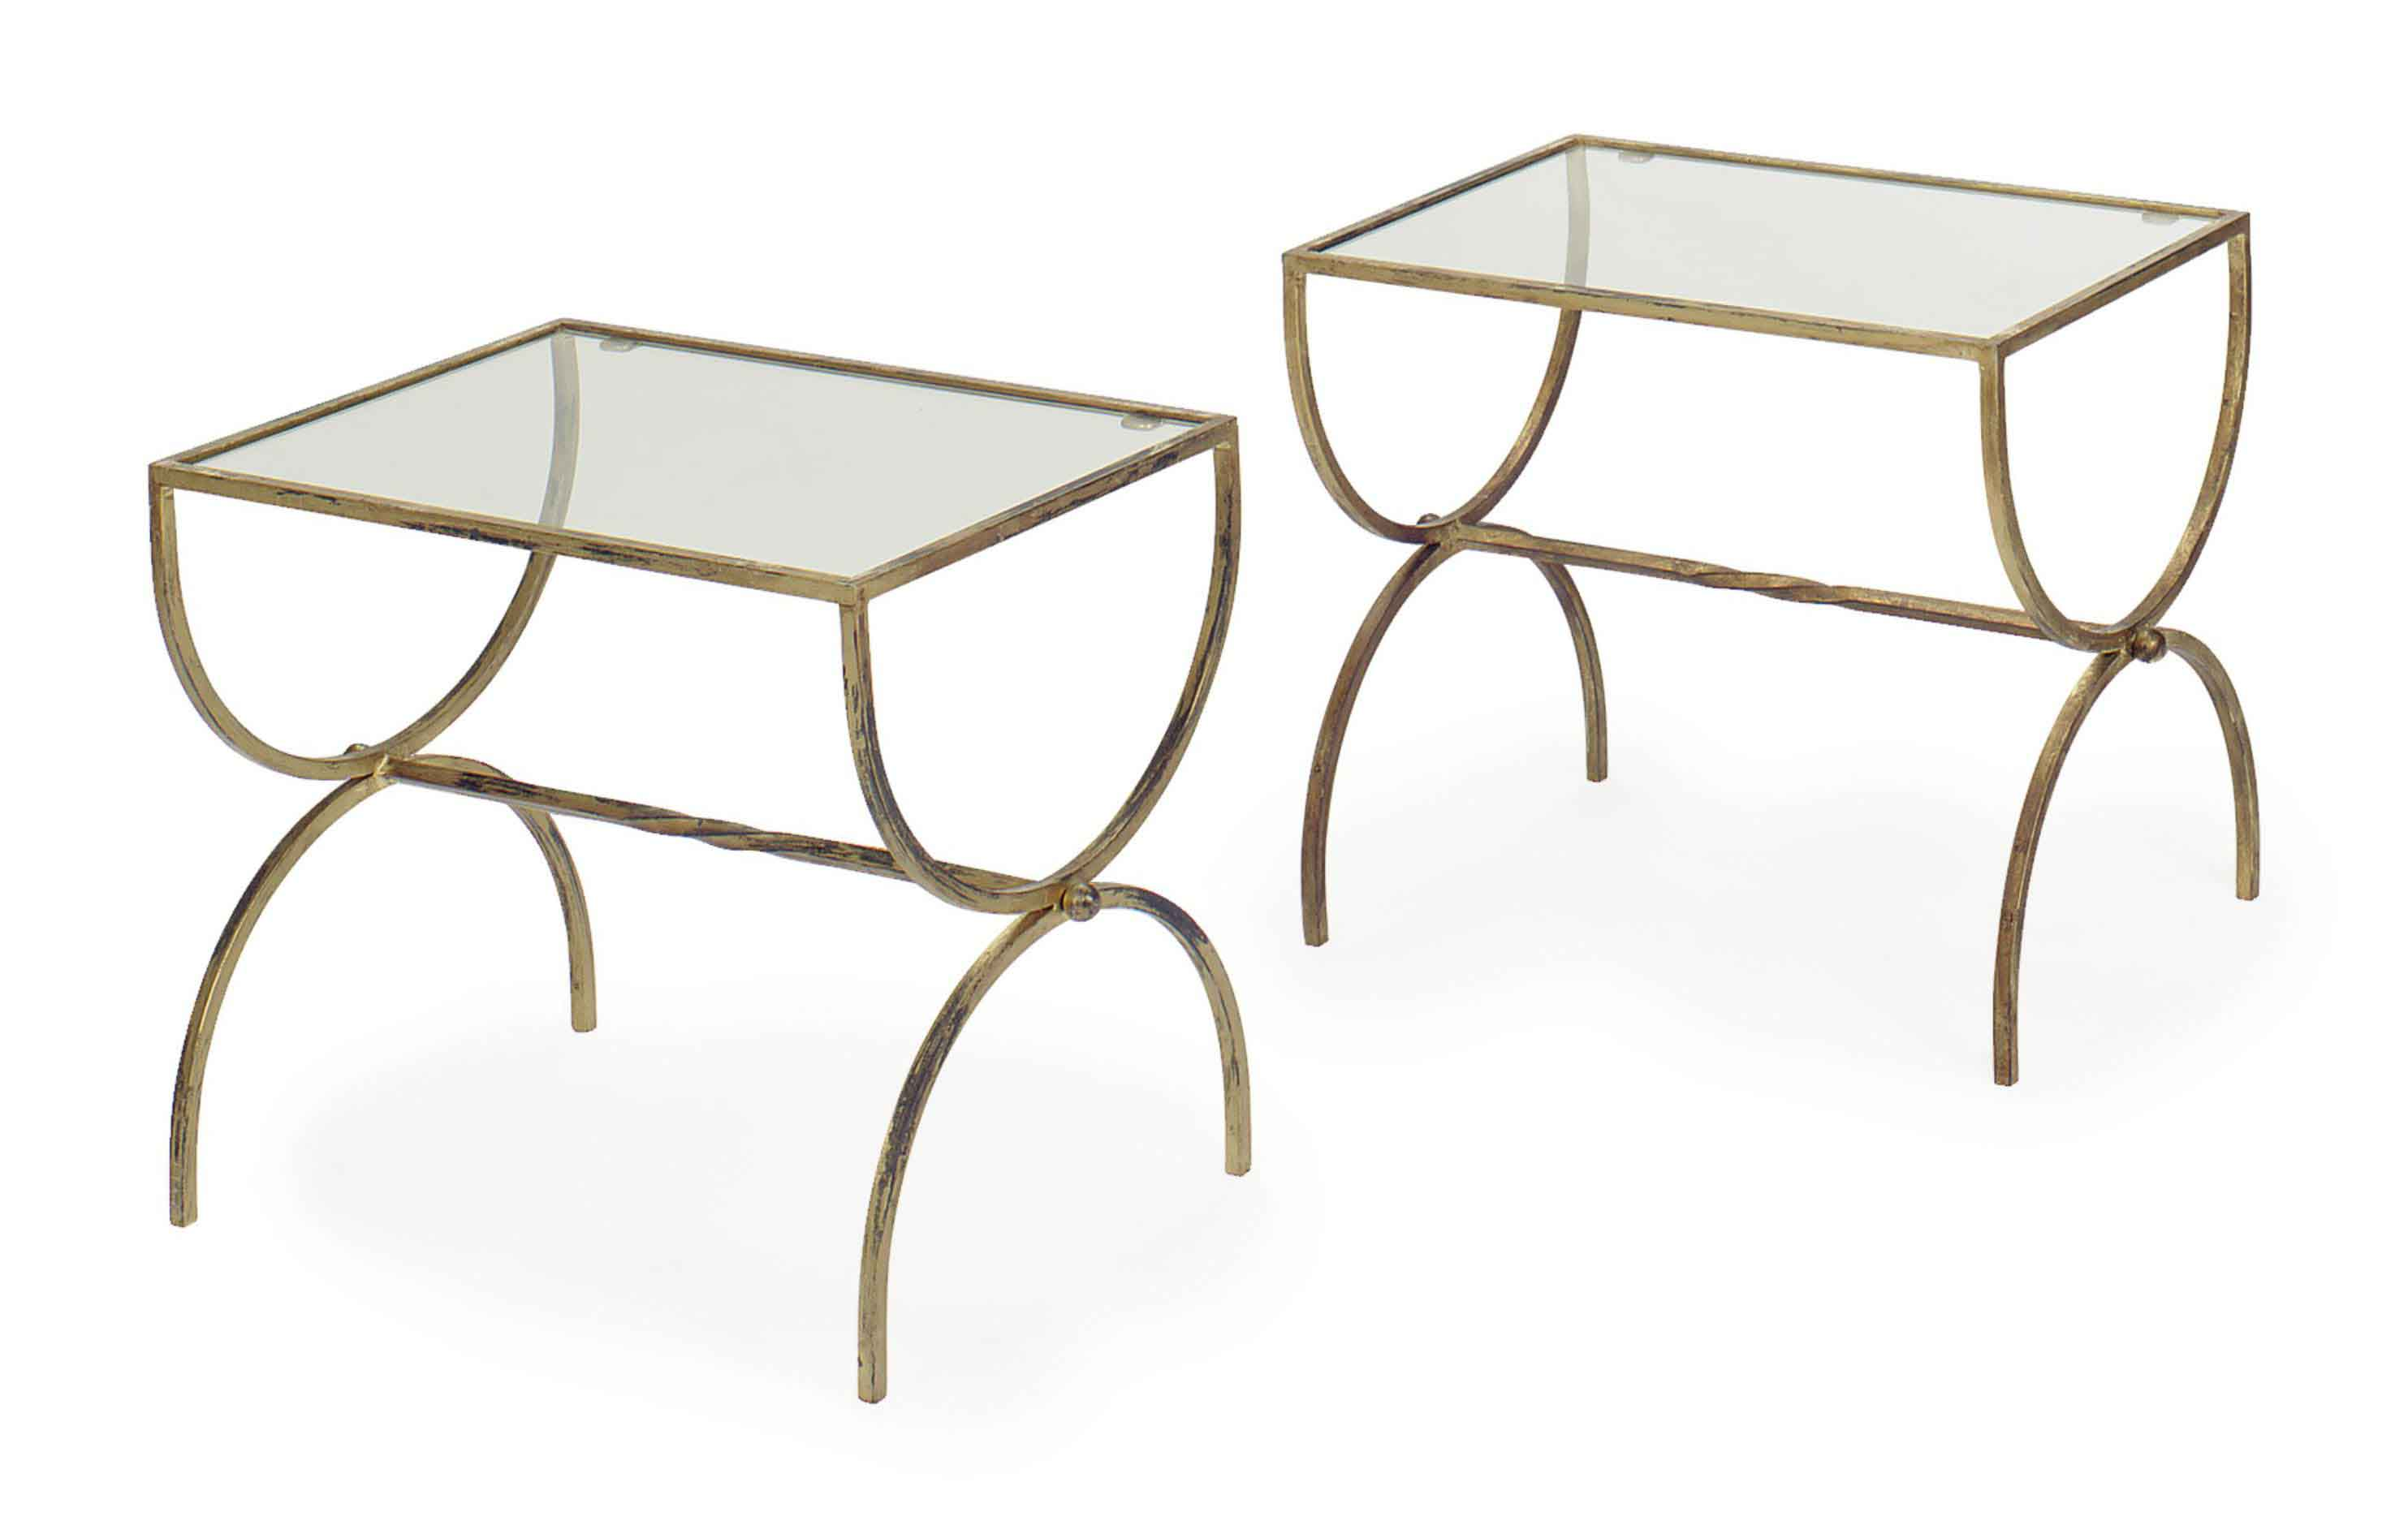 A PAIR OF SPANISH GILT-METAL AND GLASS LOW TABLES,